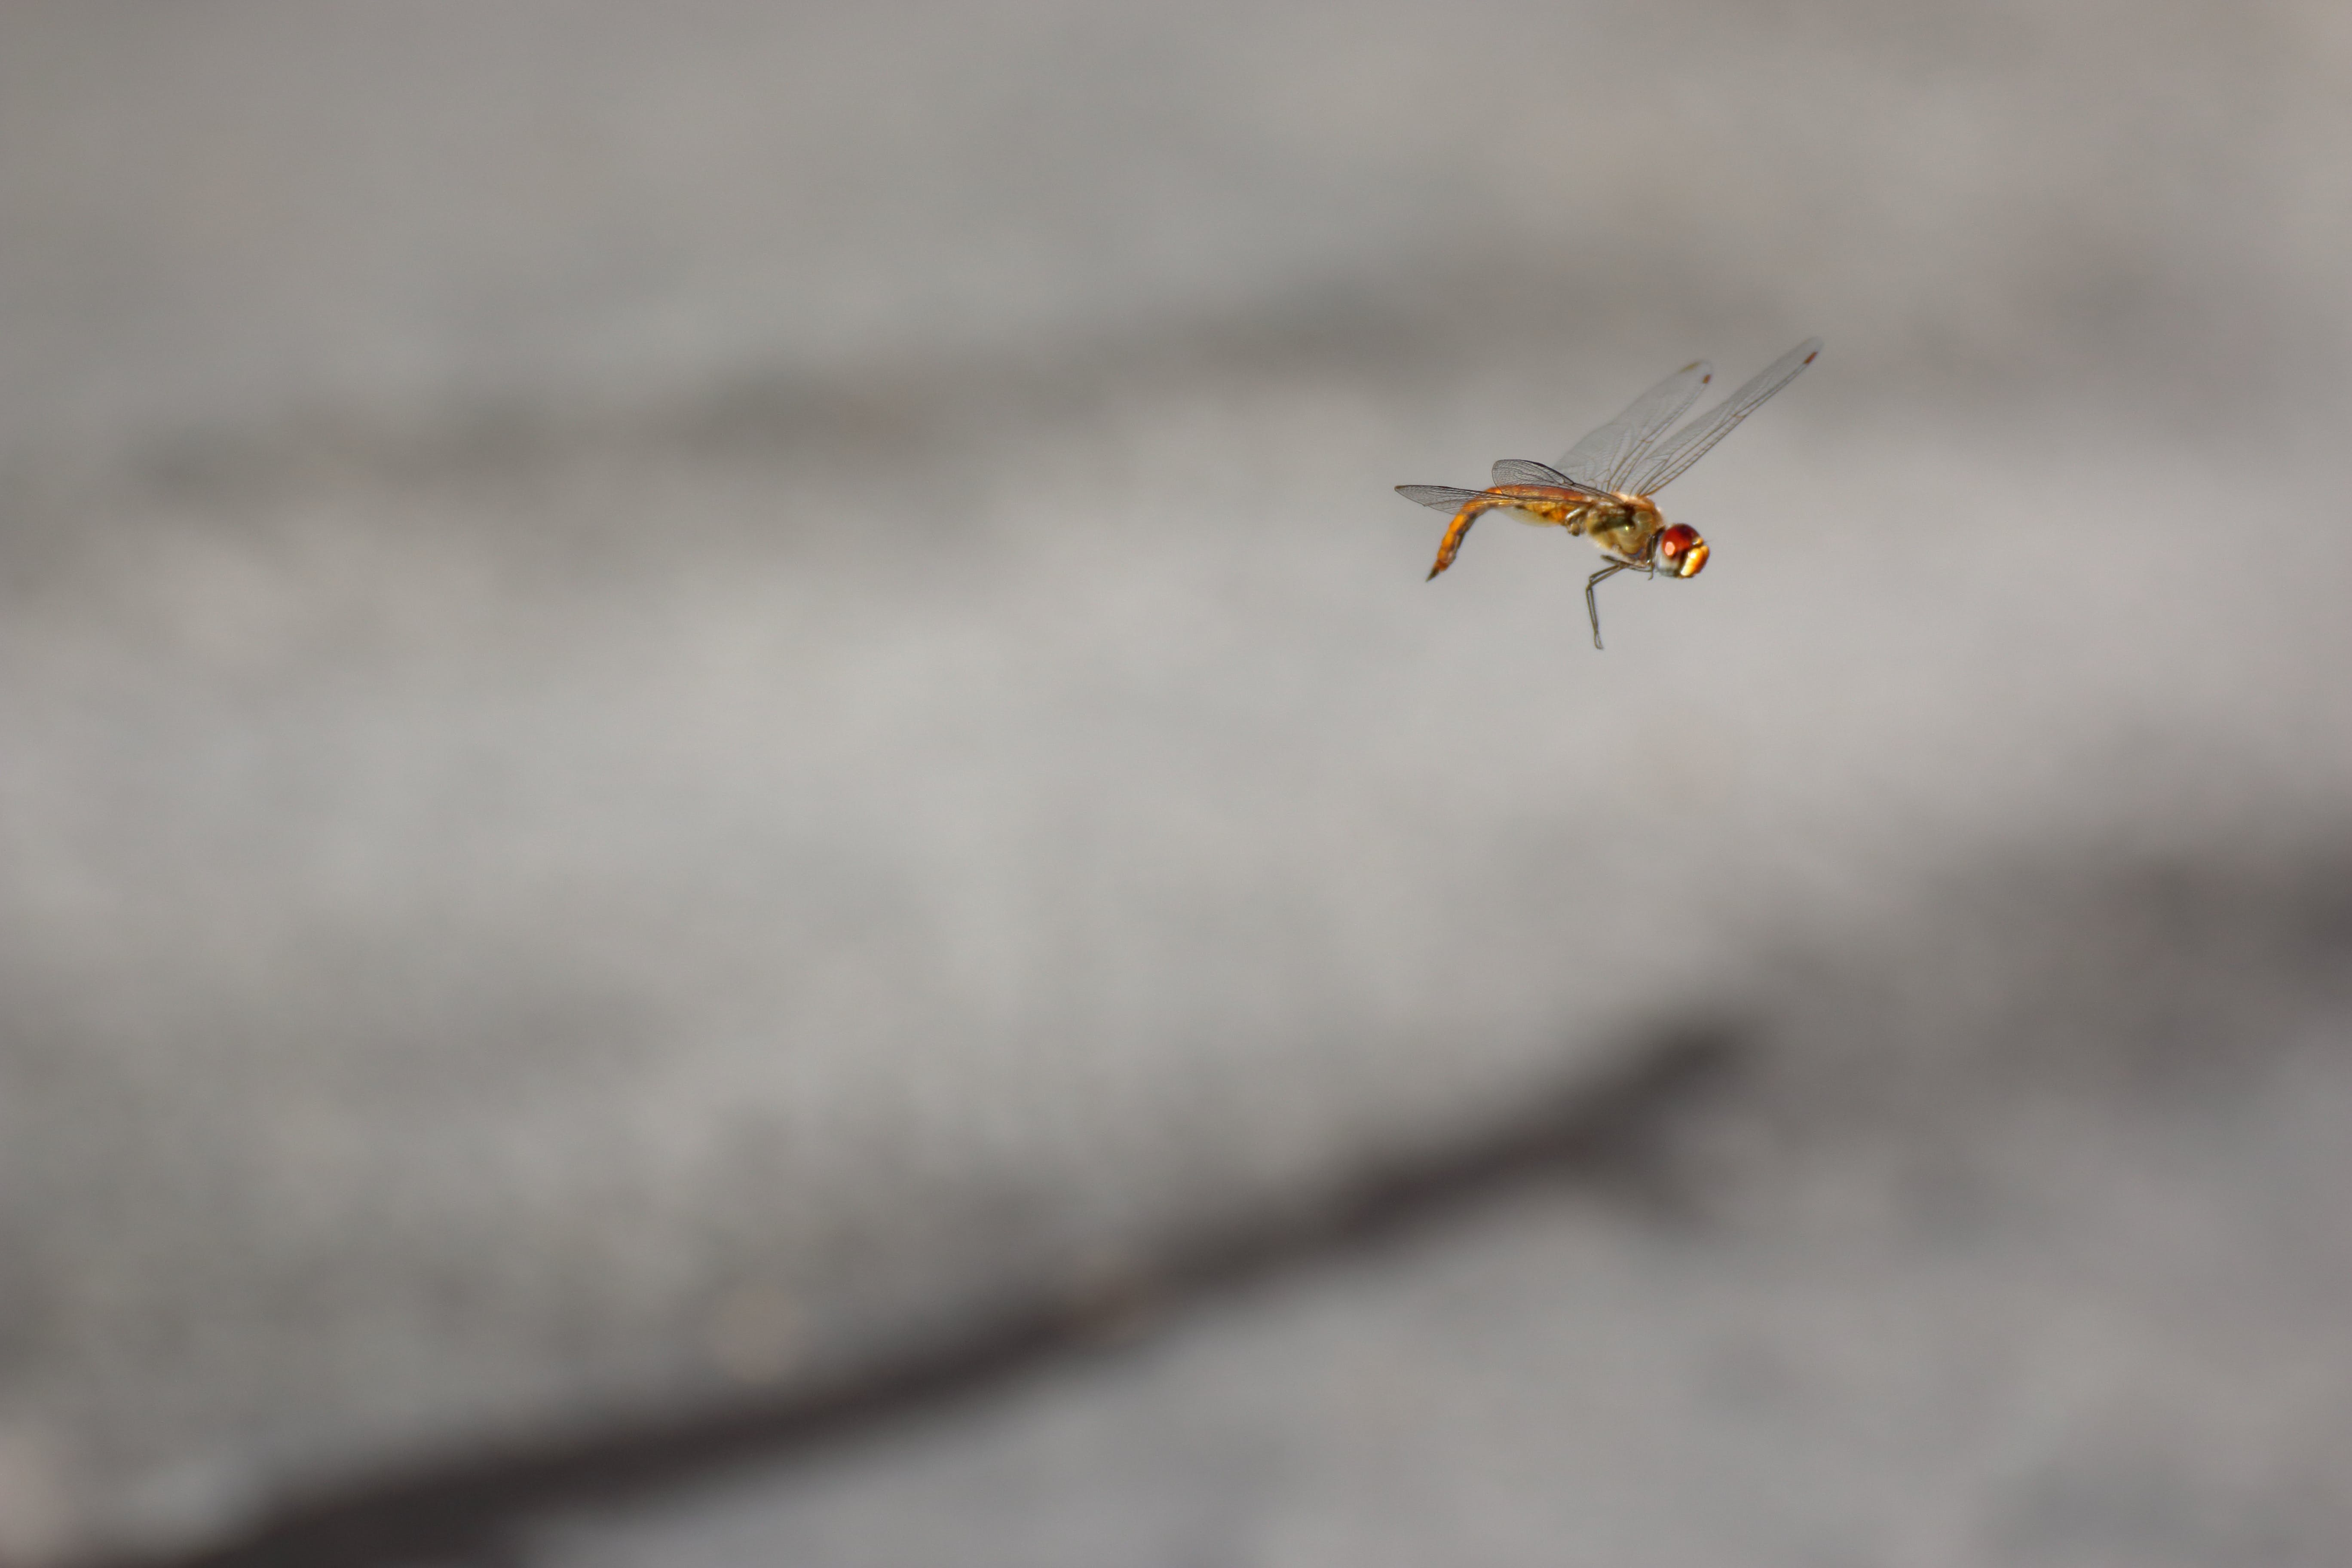 Free stock photo of dragonfly, flying, high speed, insect